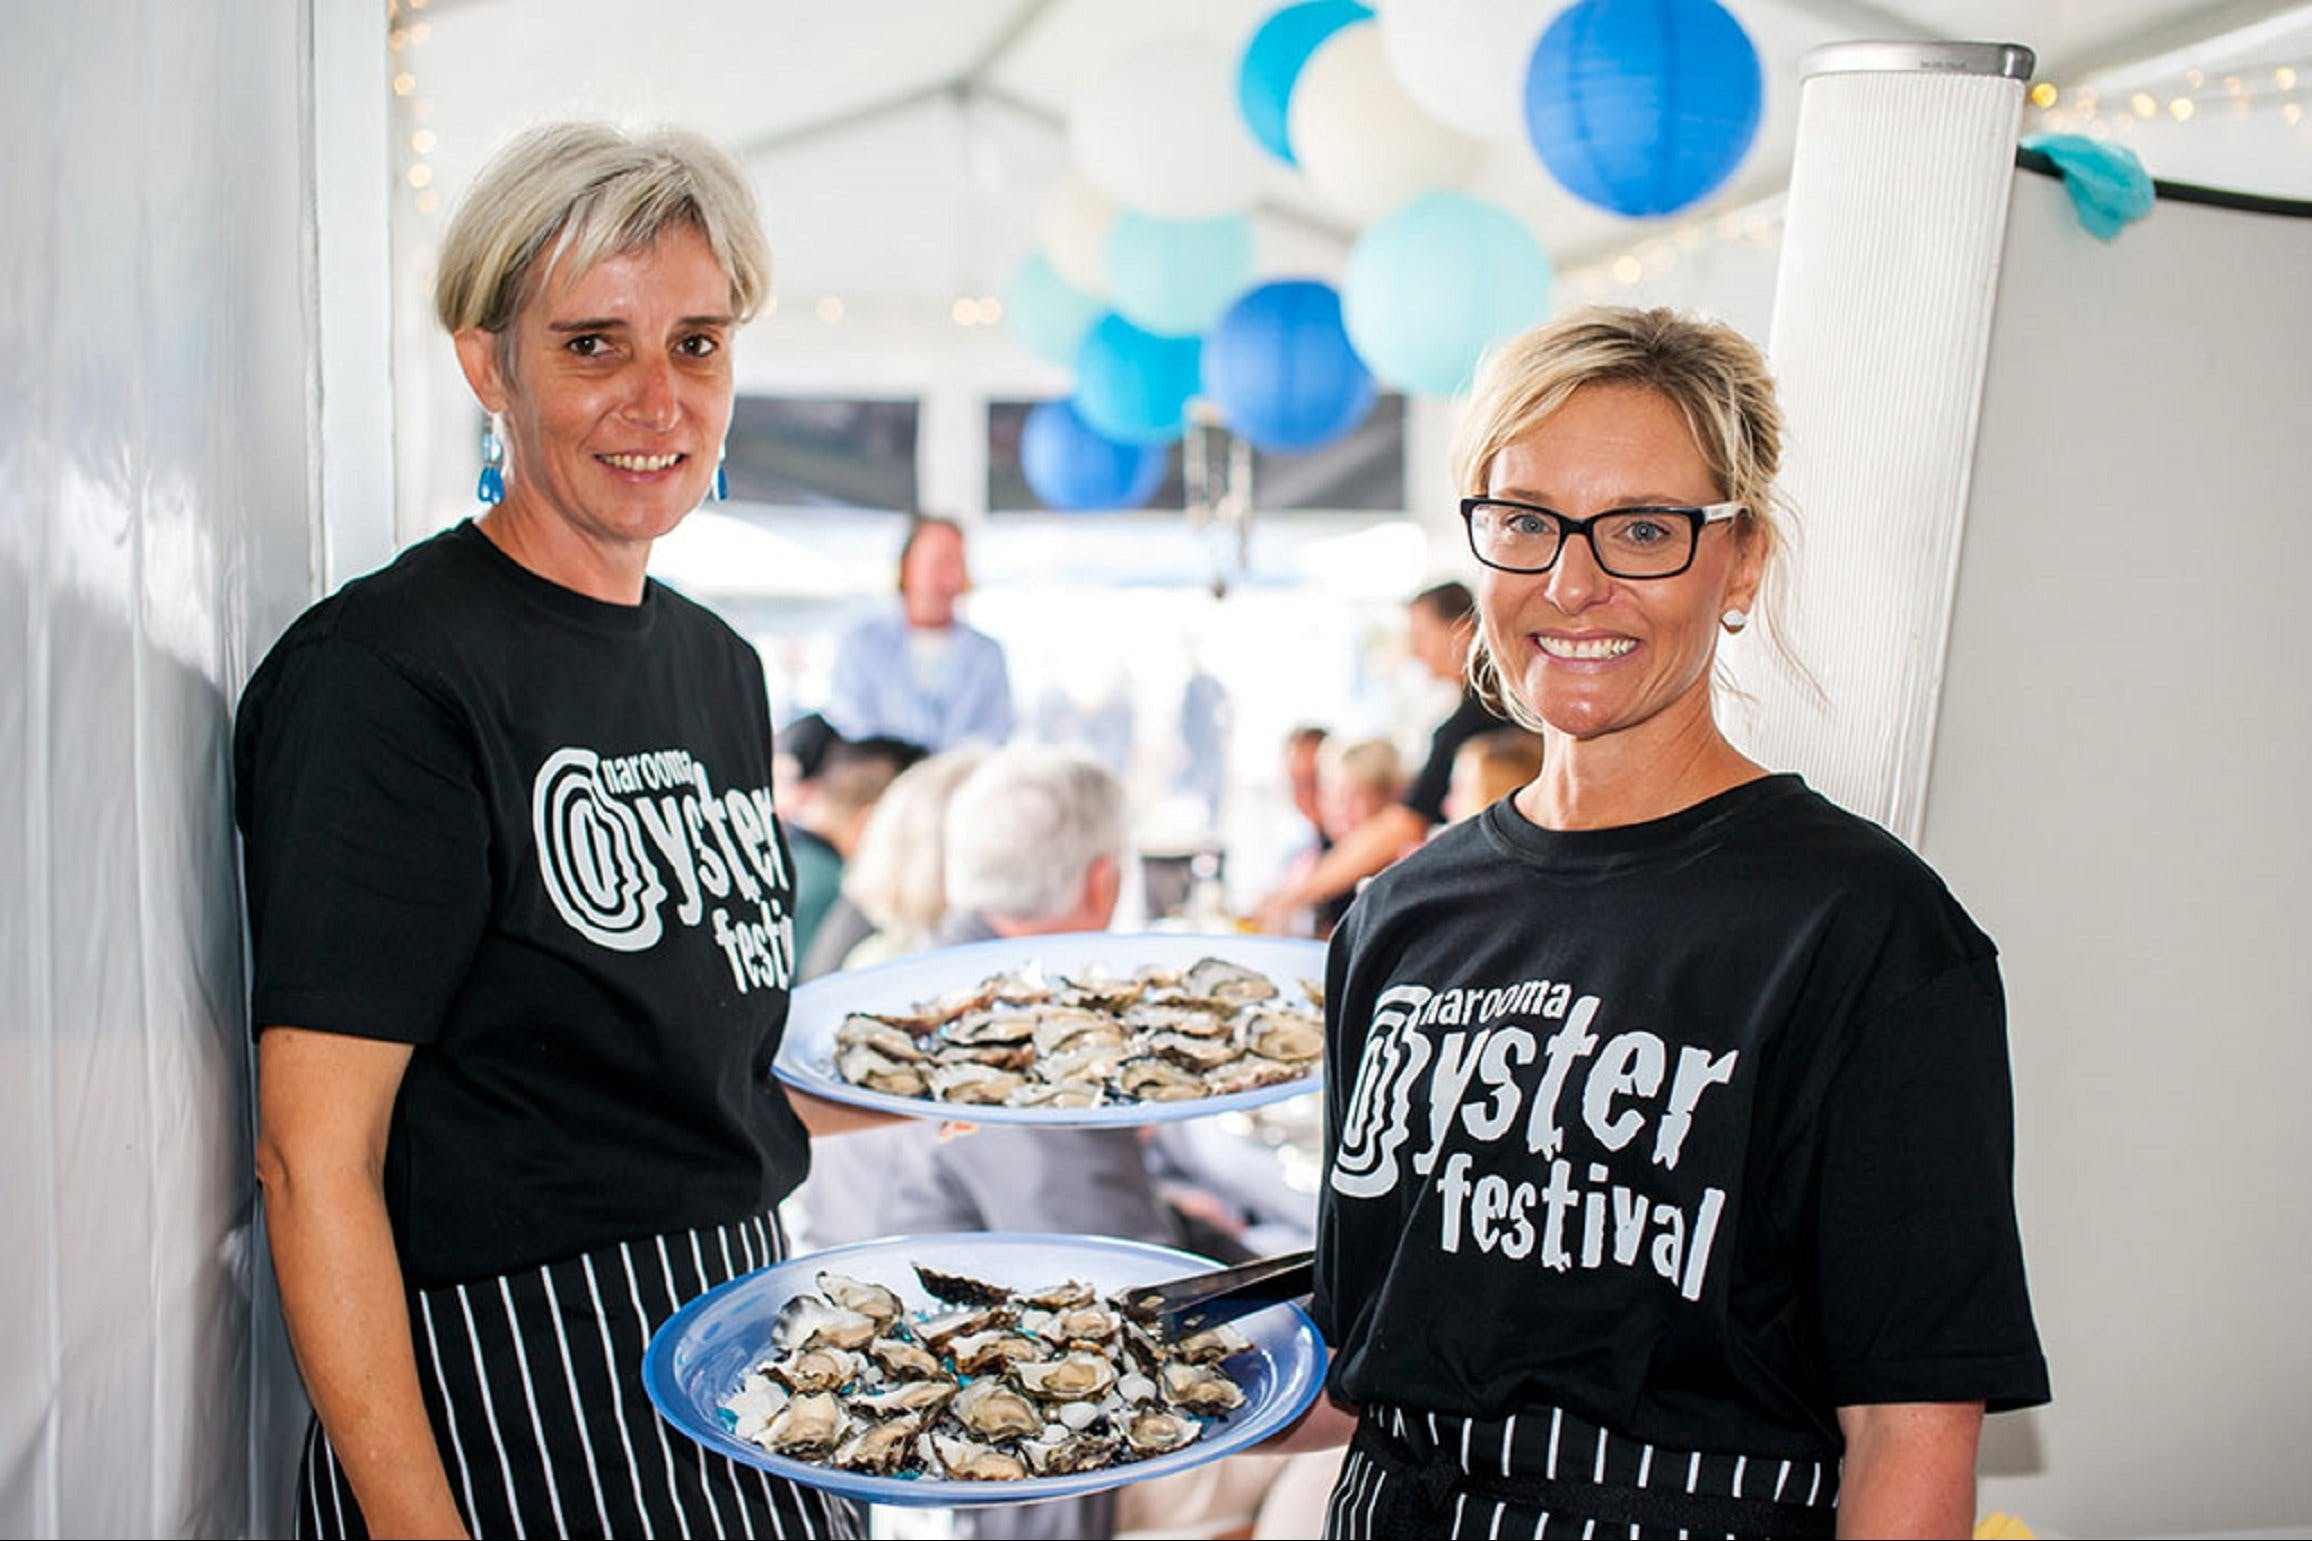 Narooma Oyster Festival - Yarra Valley Accommodation